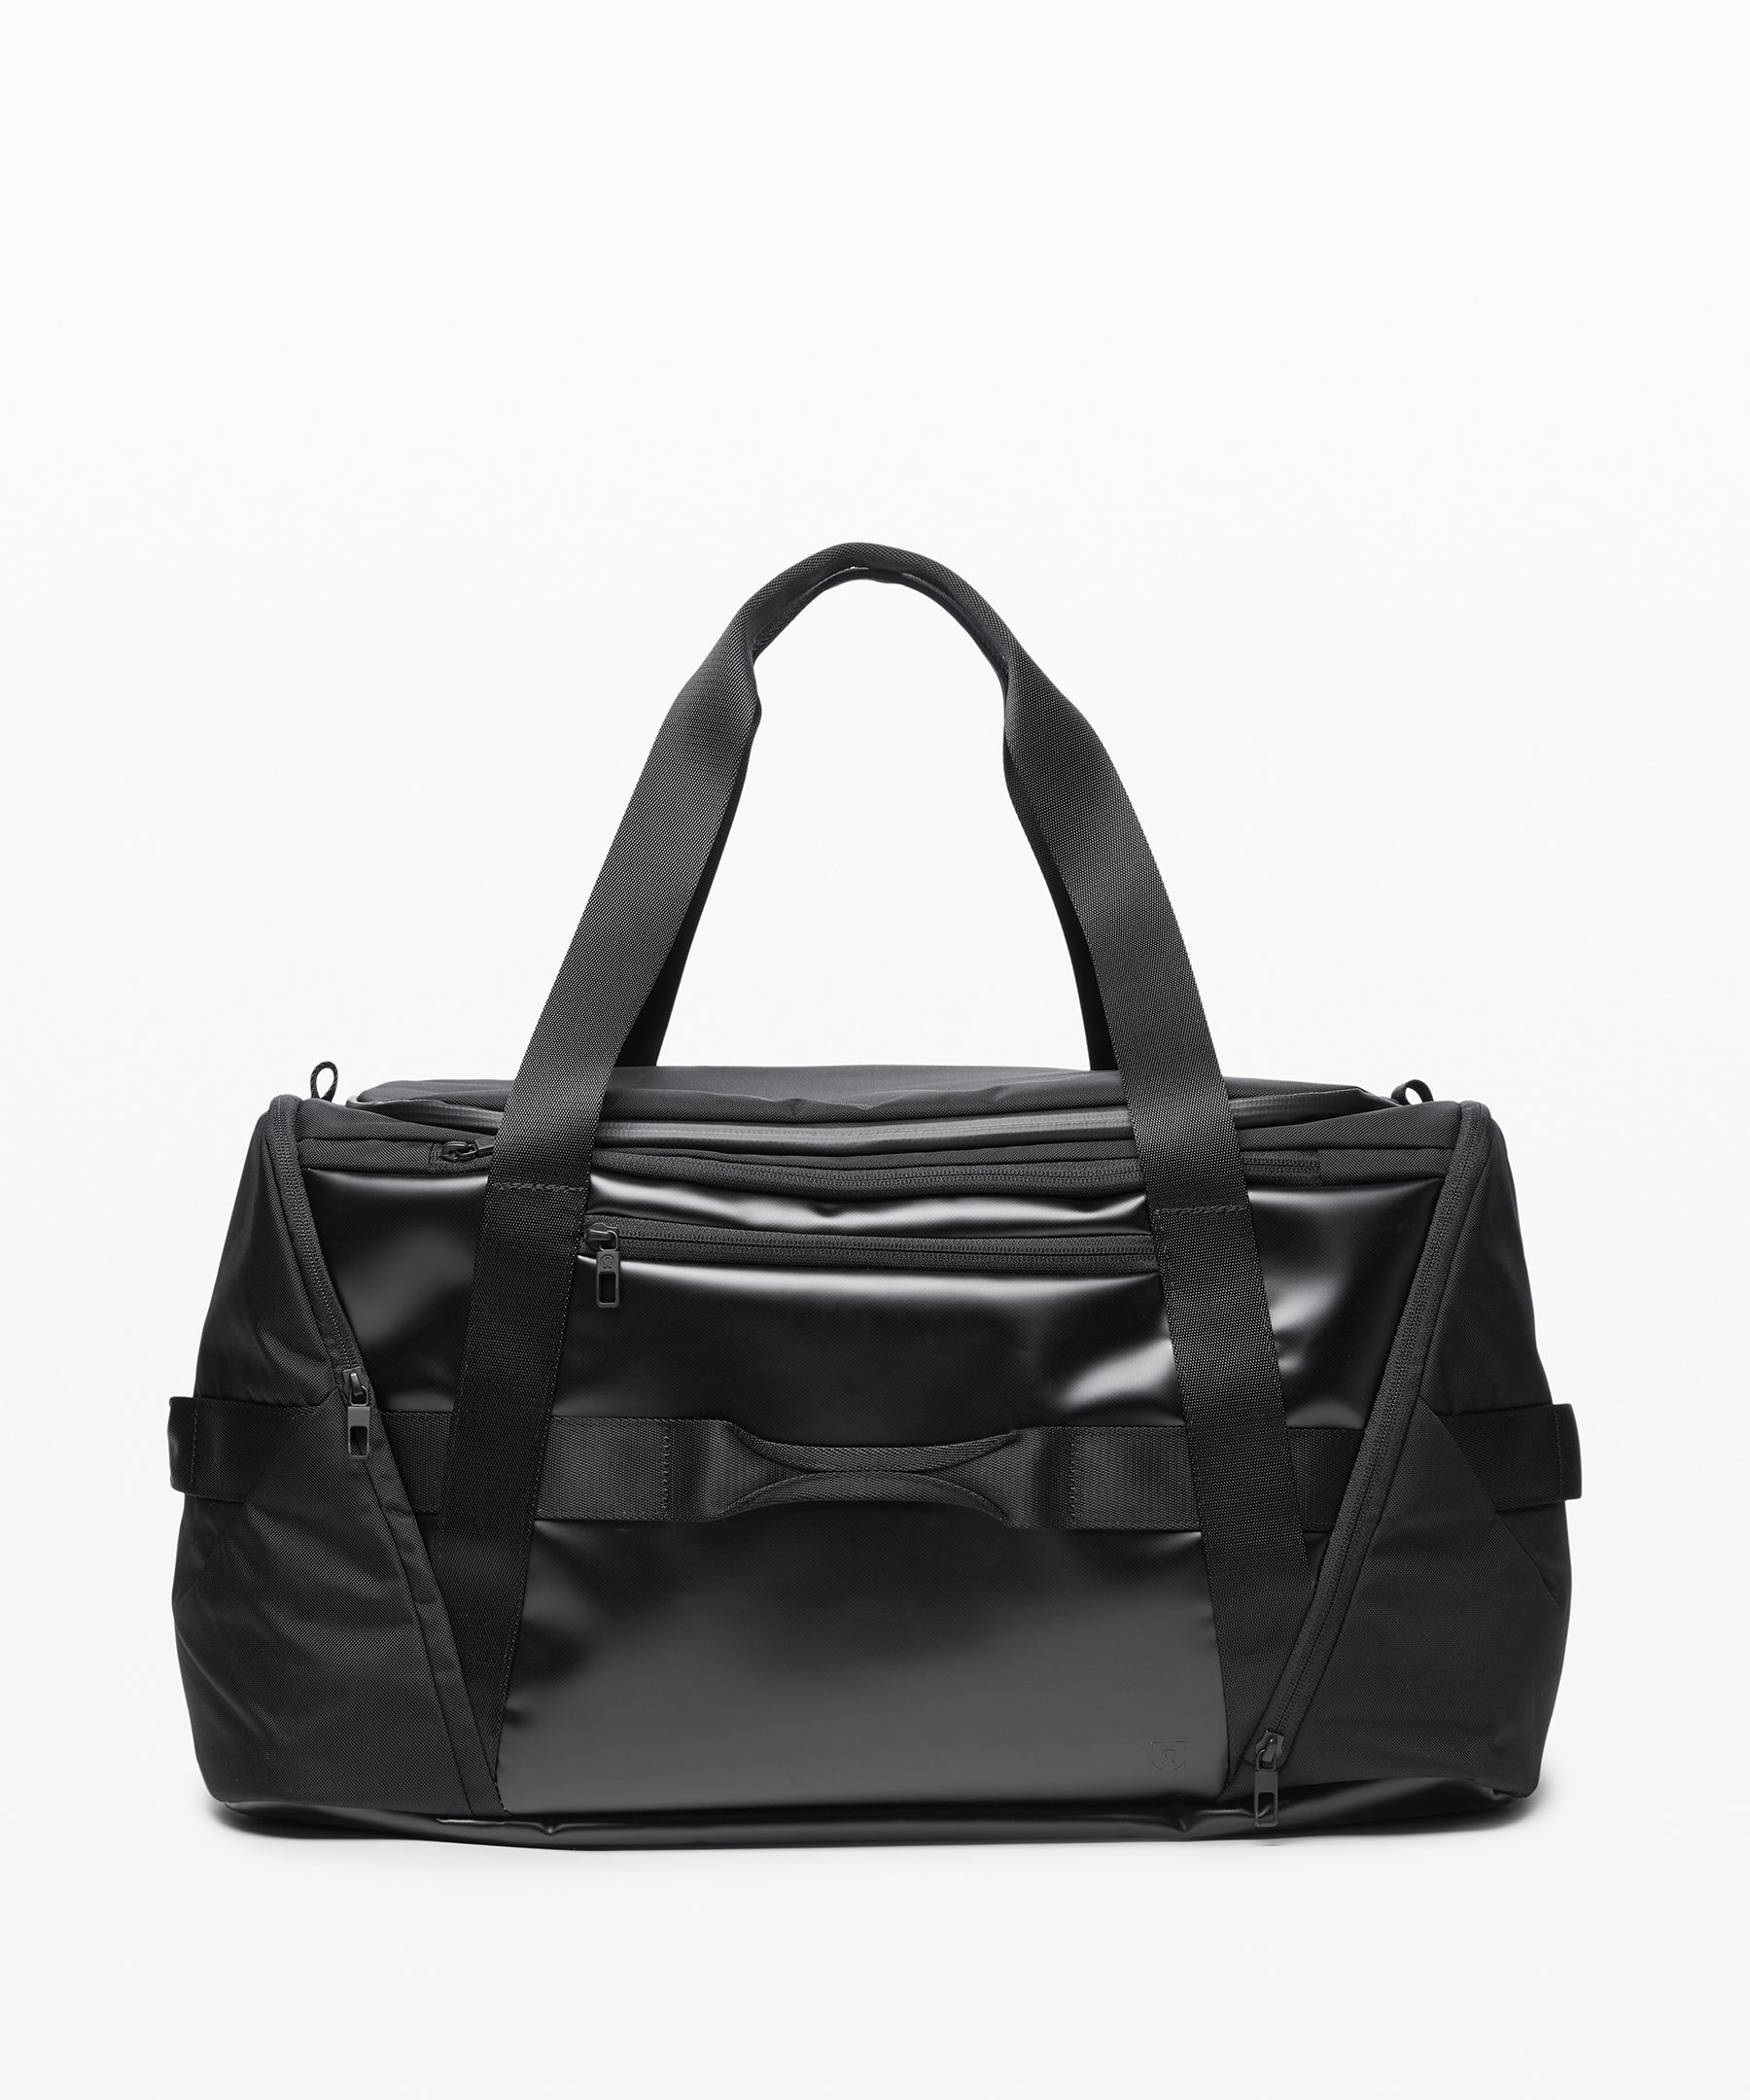 Pack for the office or the gym  with this D-zip duffel. Carry  it by the handle or attach the  straps to wear it cross-body.